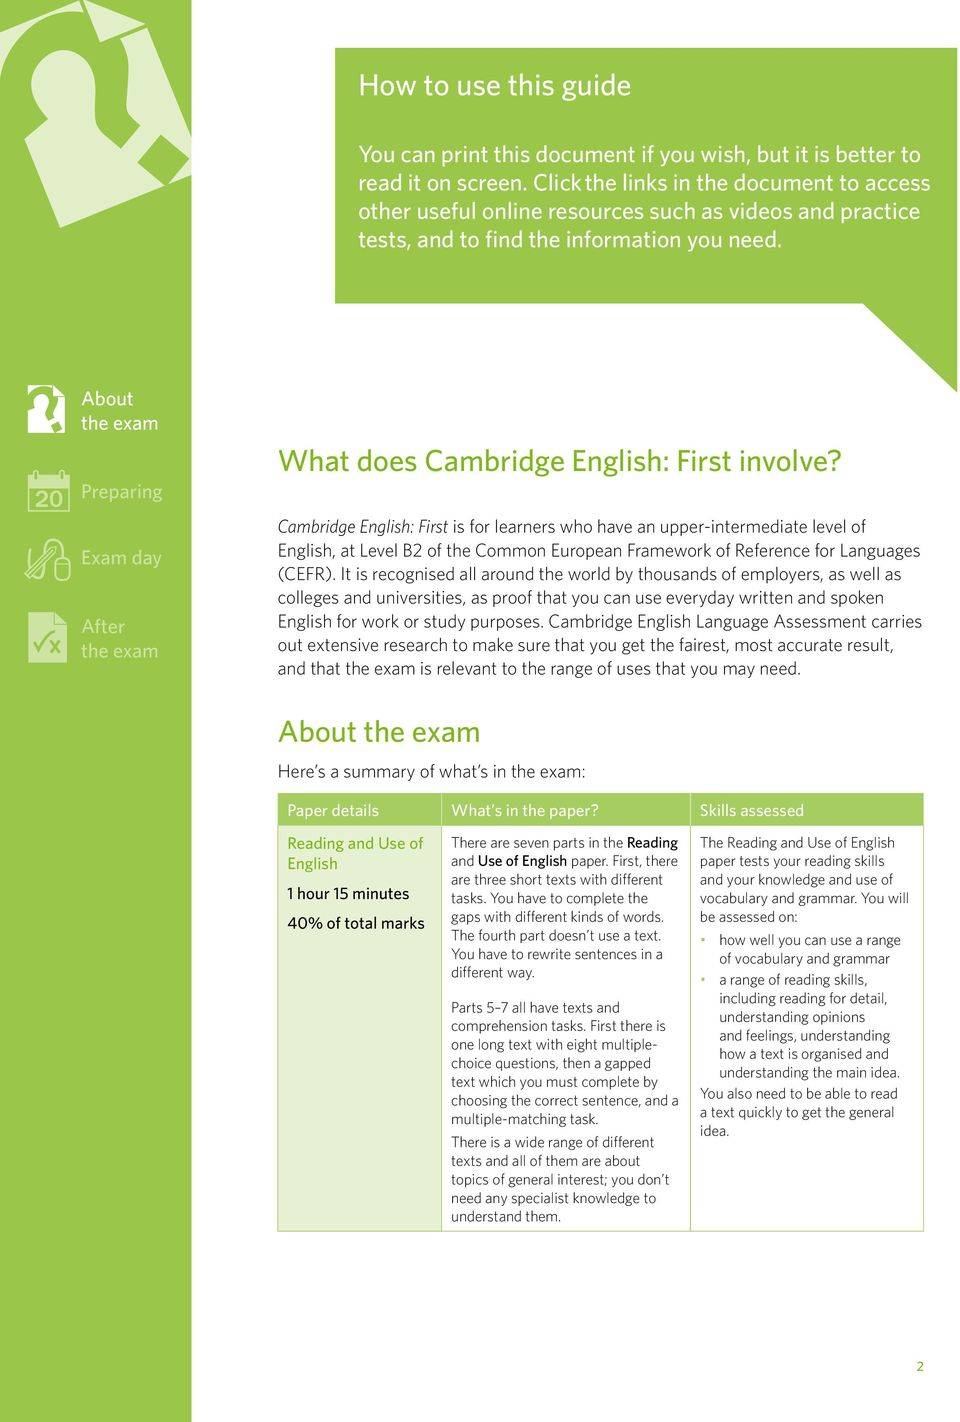 Cambridge English: First is for learners who have an upper-intermediate level of English, at Level B2 of the Common European Framework of Reference for Languages (CEFR).